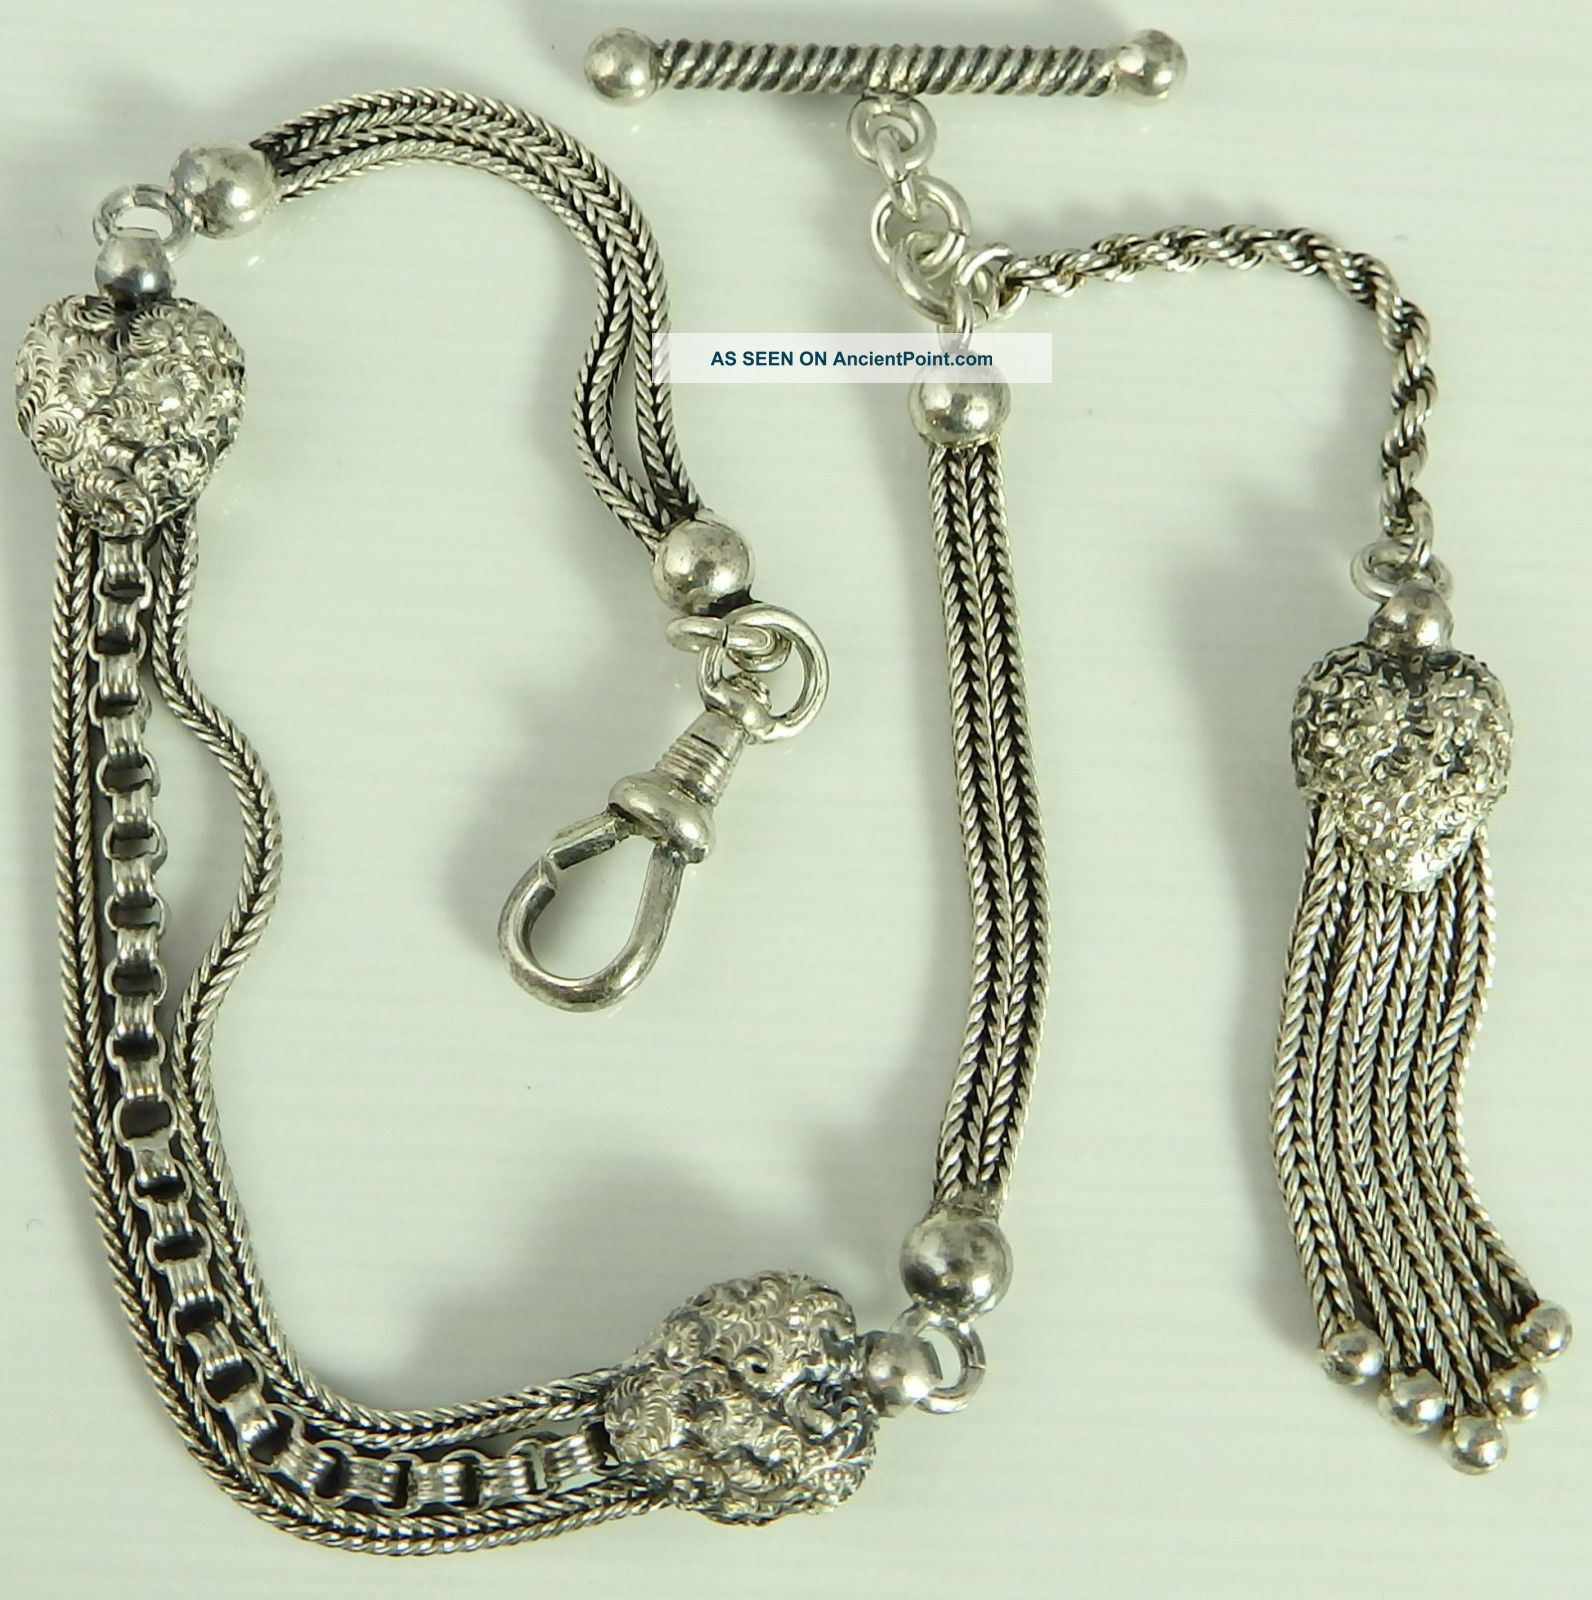 Antique White Metal Albertina Ladies Tassel Fob 8 Inch Watch Guard Chain Pocket Watches/ Chains/ Fobs photo